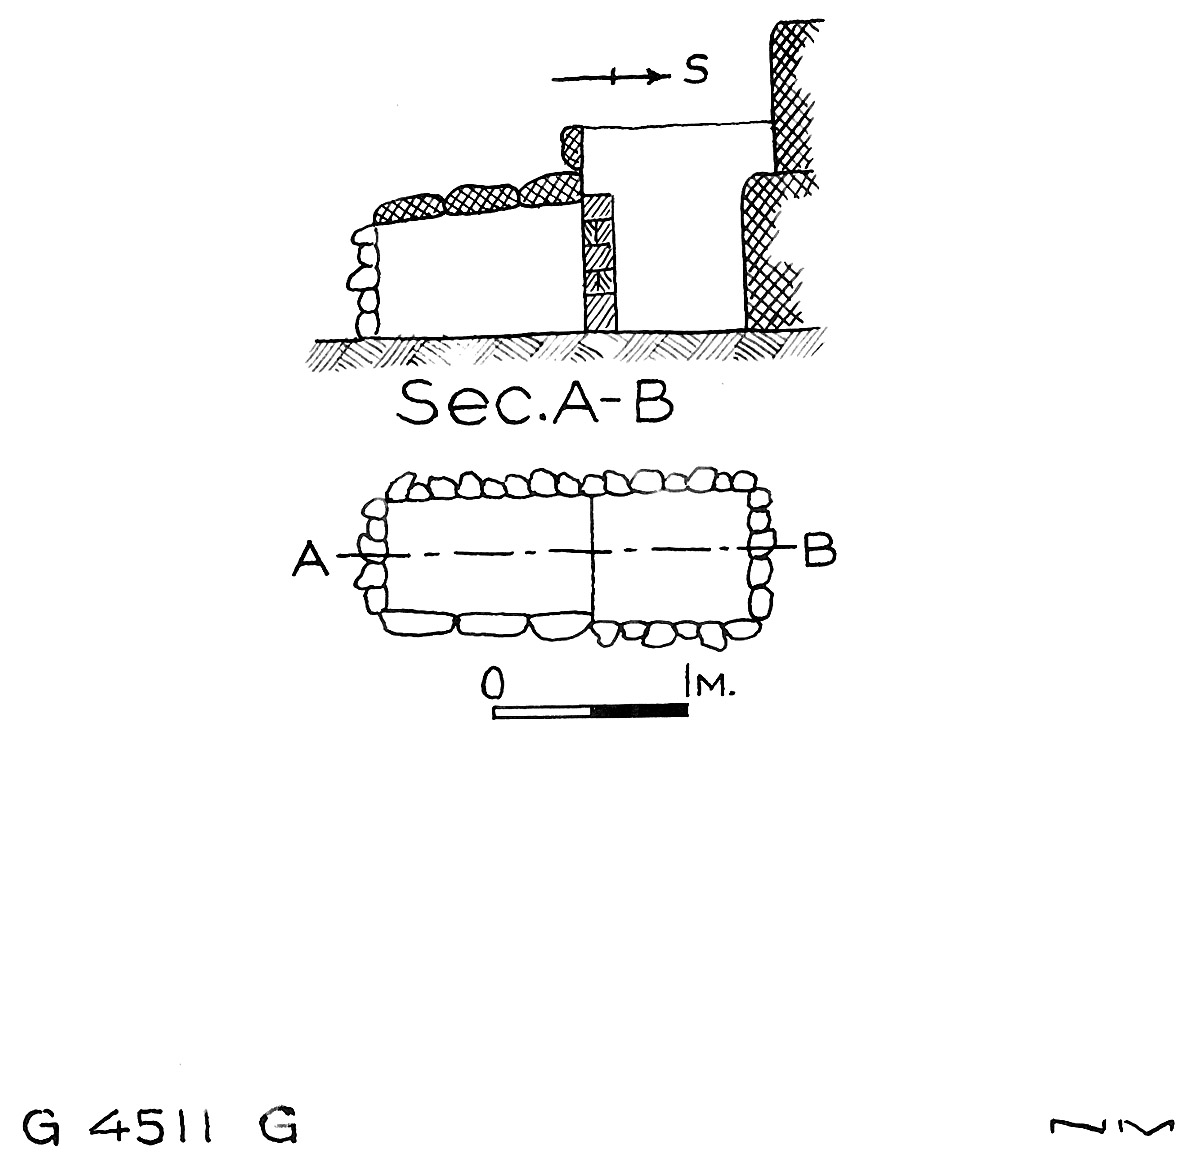 Maps and plans: G 4511, Shaft G